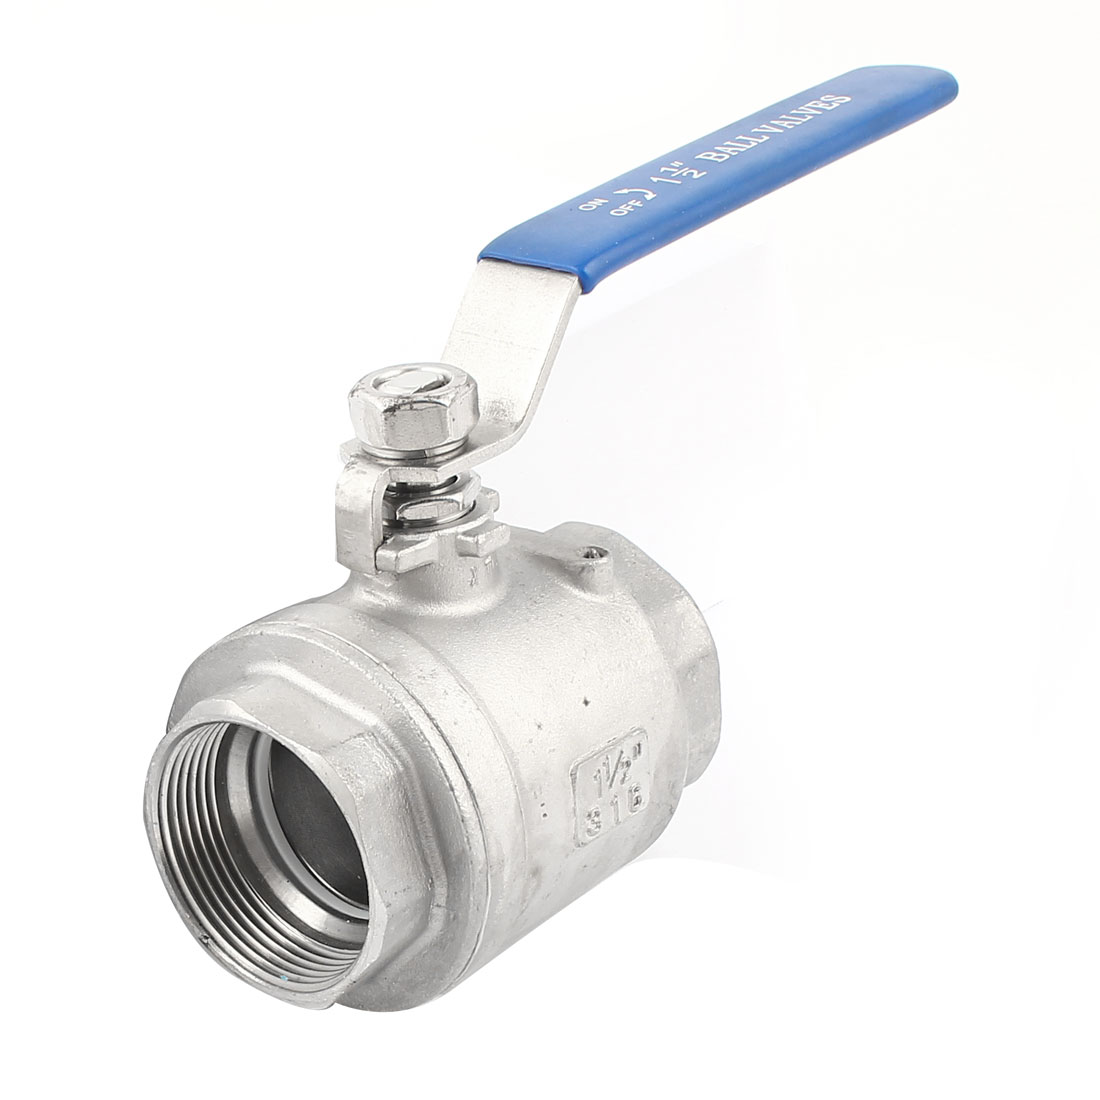 1 1/2PT 45mm Female Blue Plastic Coated Handle 90 Degree Rotary Lever Water Flow Control Stainless Steel Straight Ball Valve